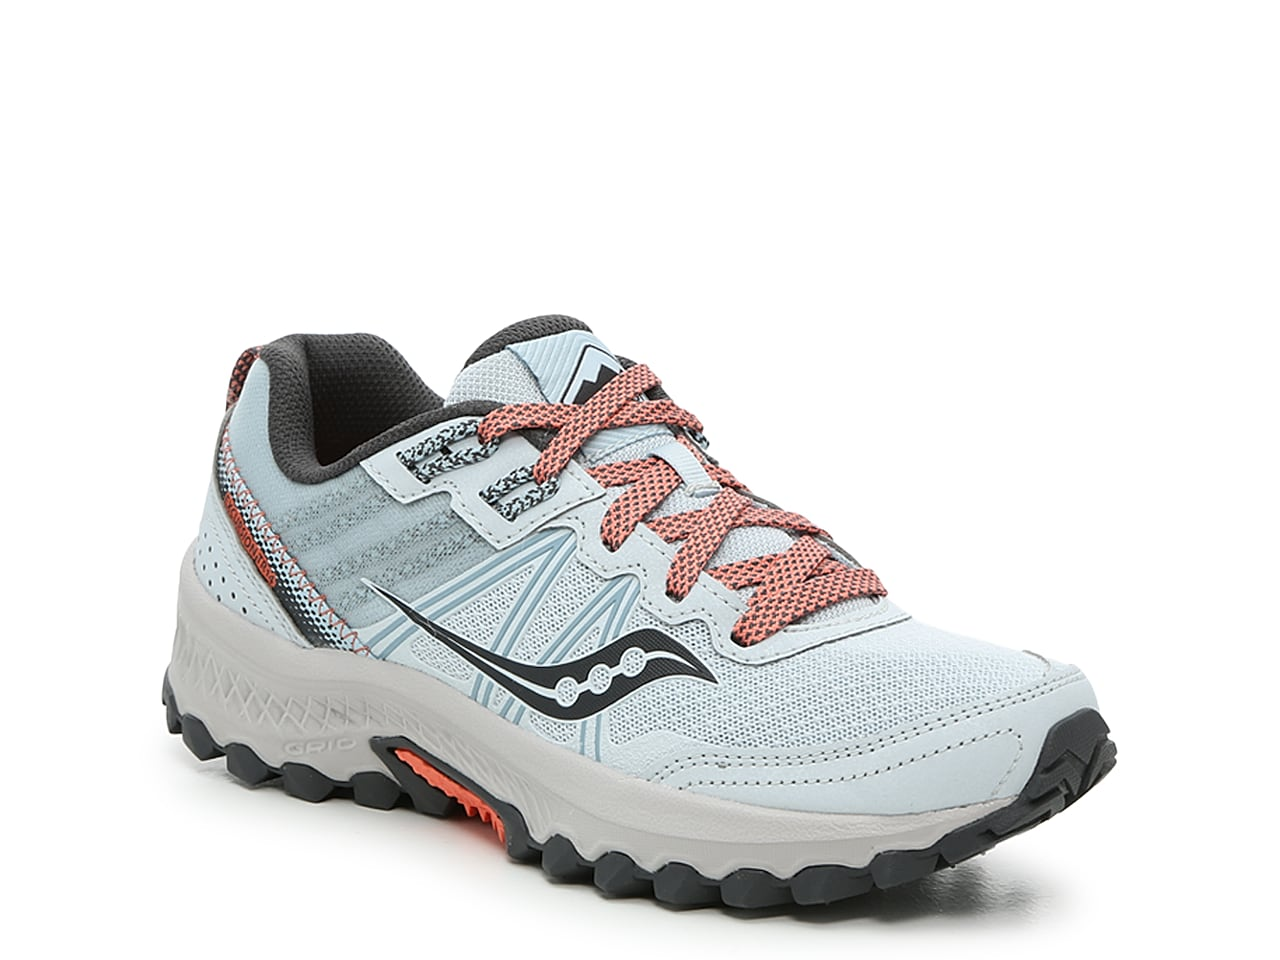 Excursion TR 14 Trail Running Shoe - Women's